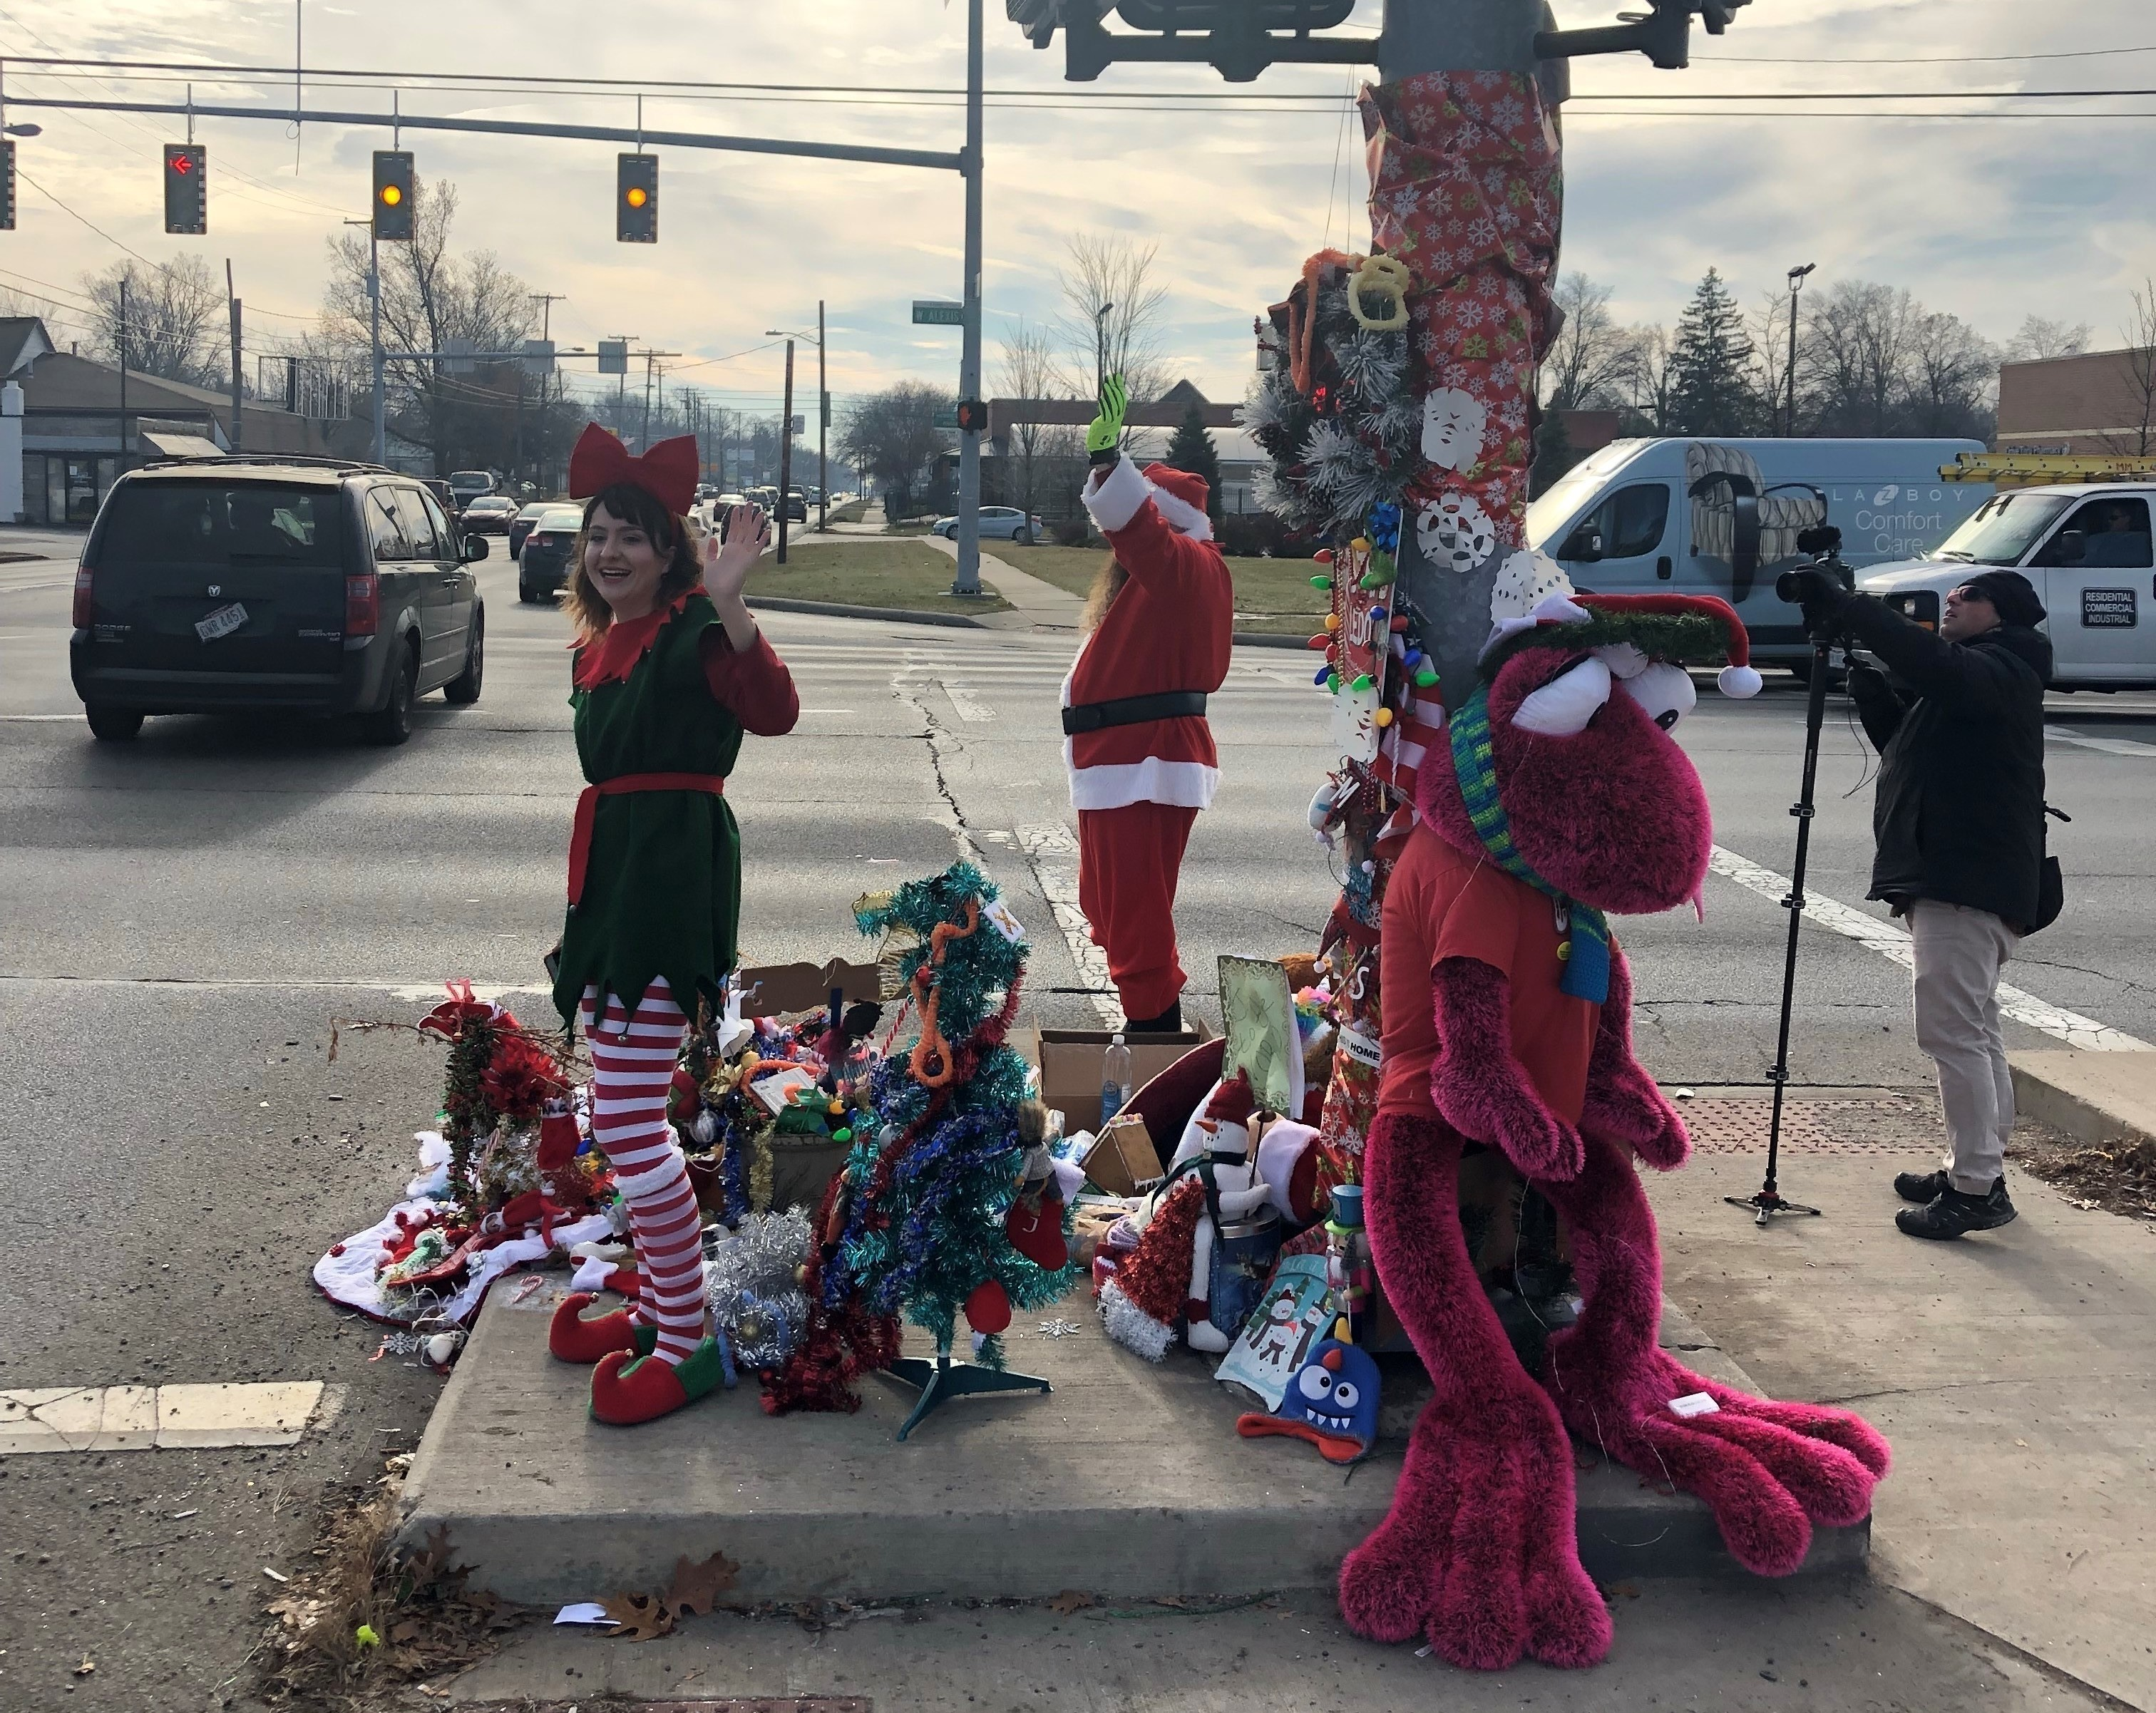 Whats Open Christmas Day 2020 Toledo Ohio A Weed Grows In Toledo, And Residents Hang Their Christmas Hopes